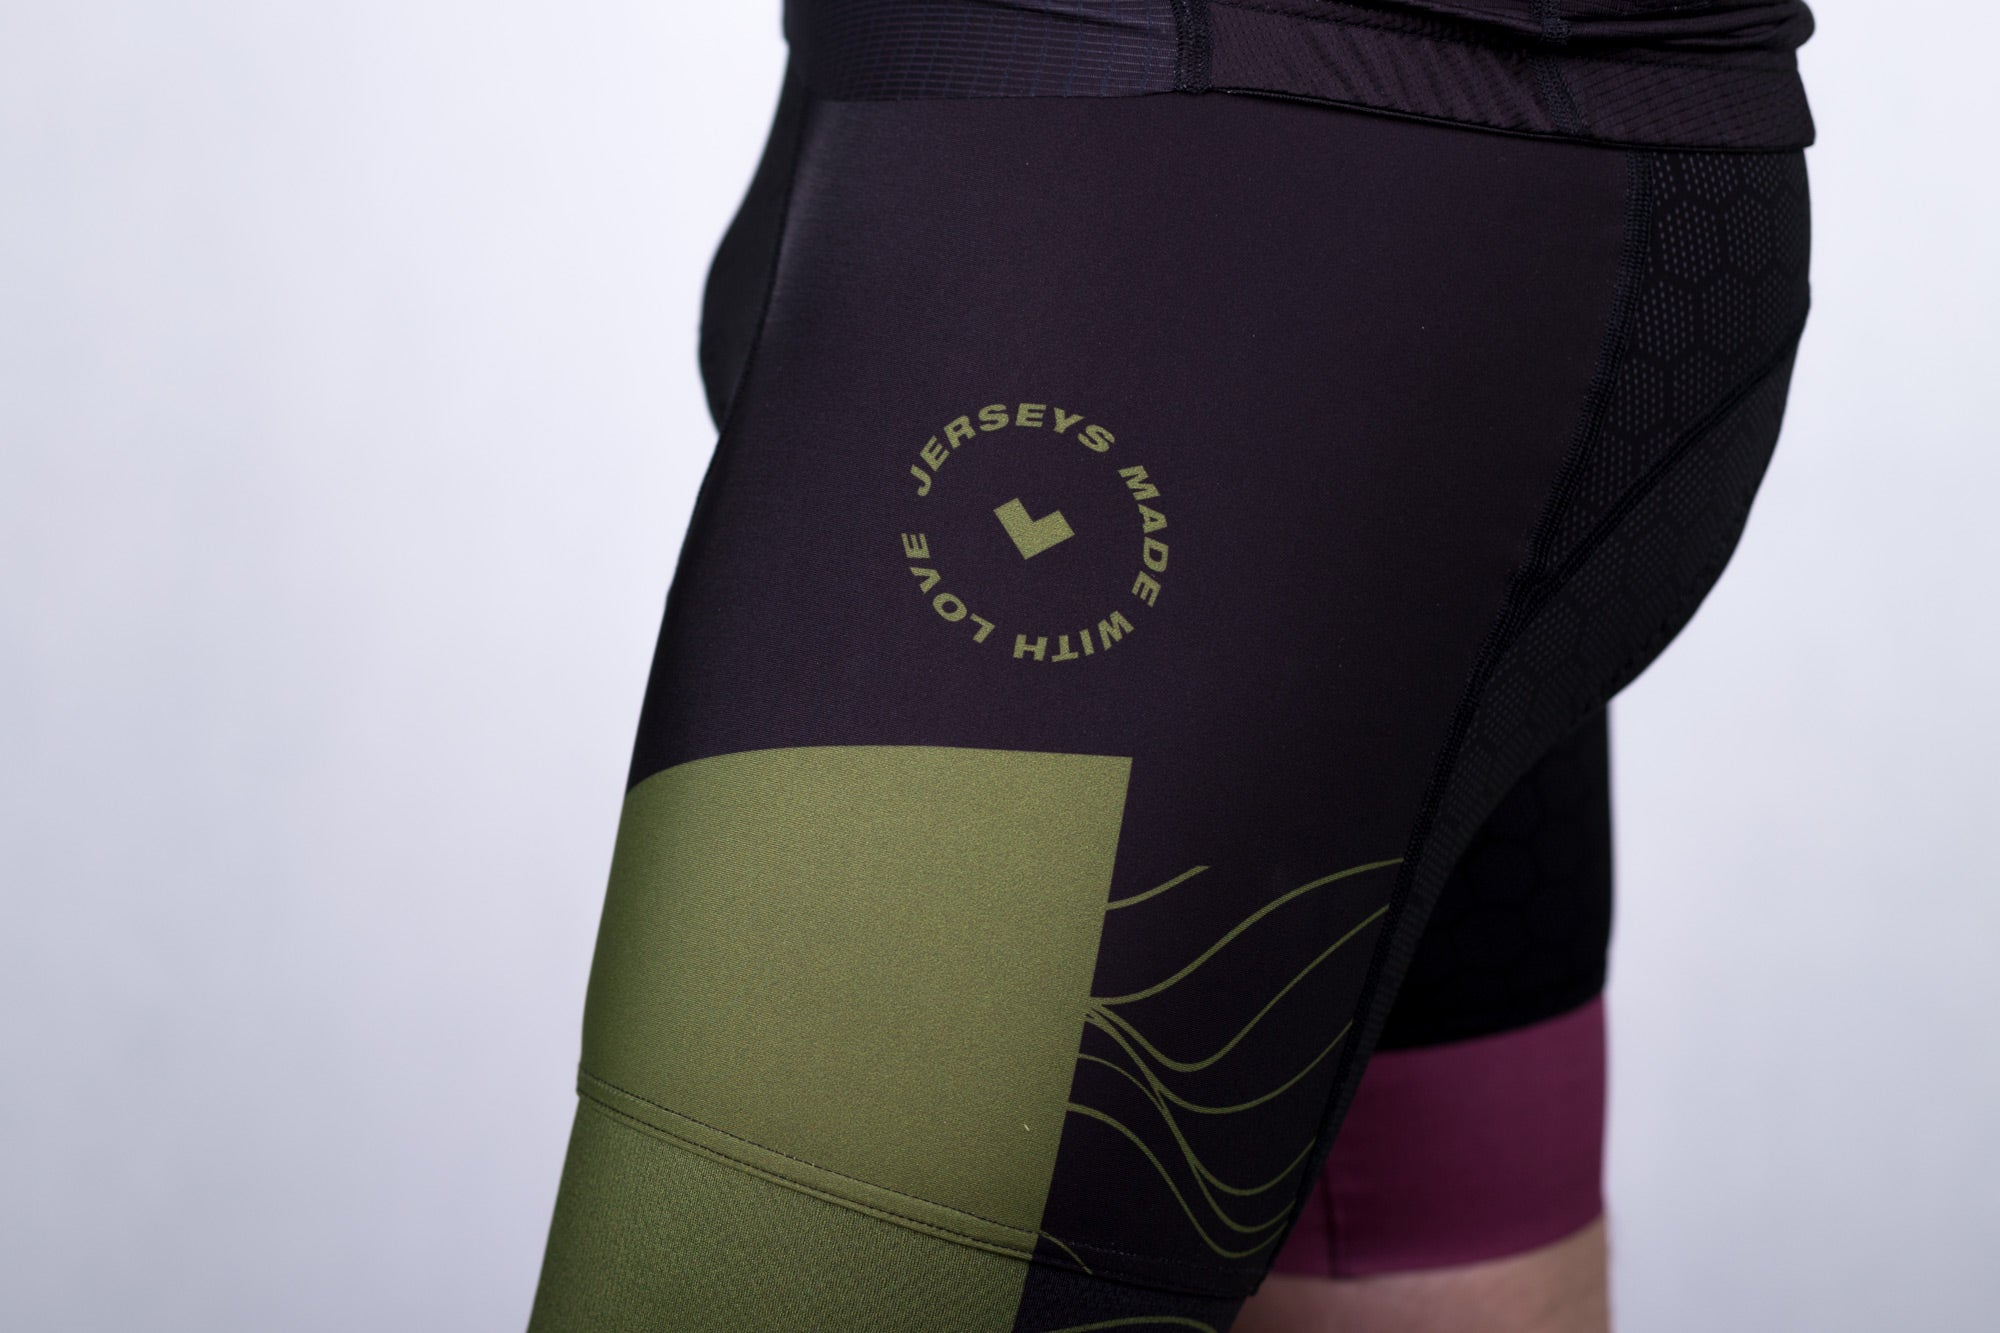 JML Contour Shorts - Jerseys Made with Love